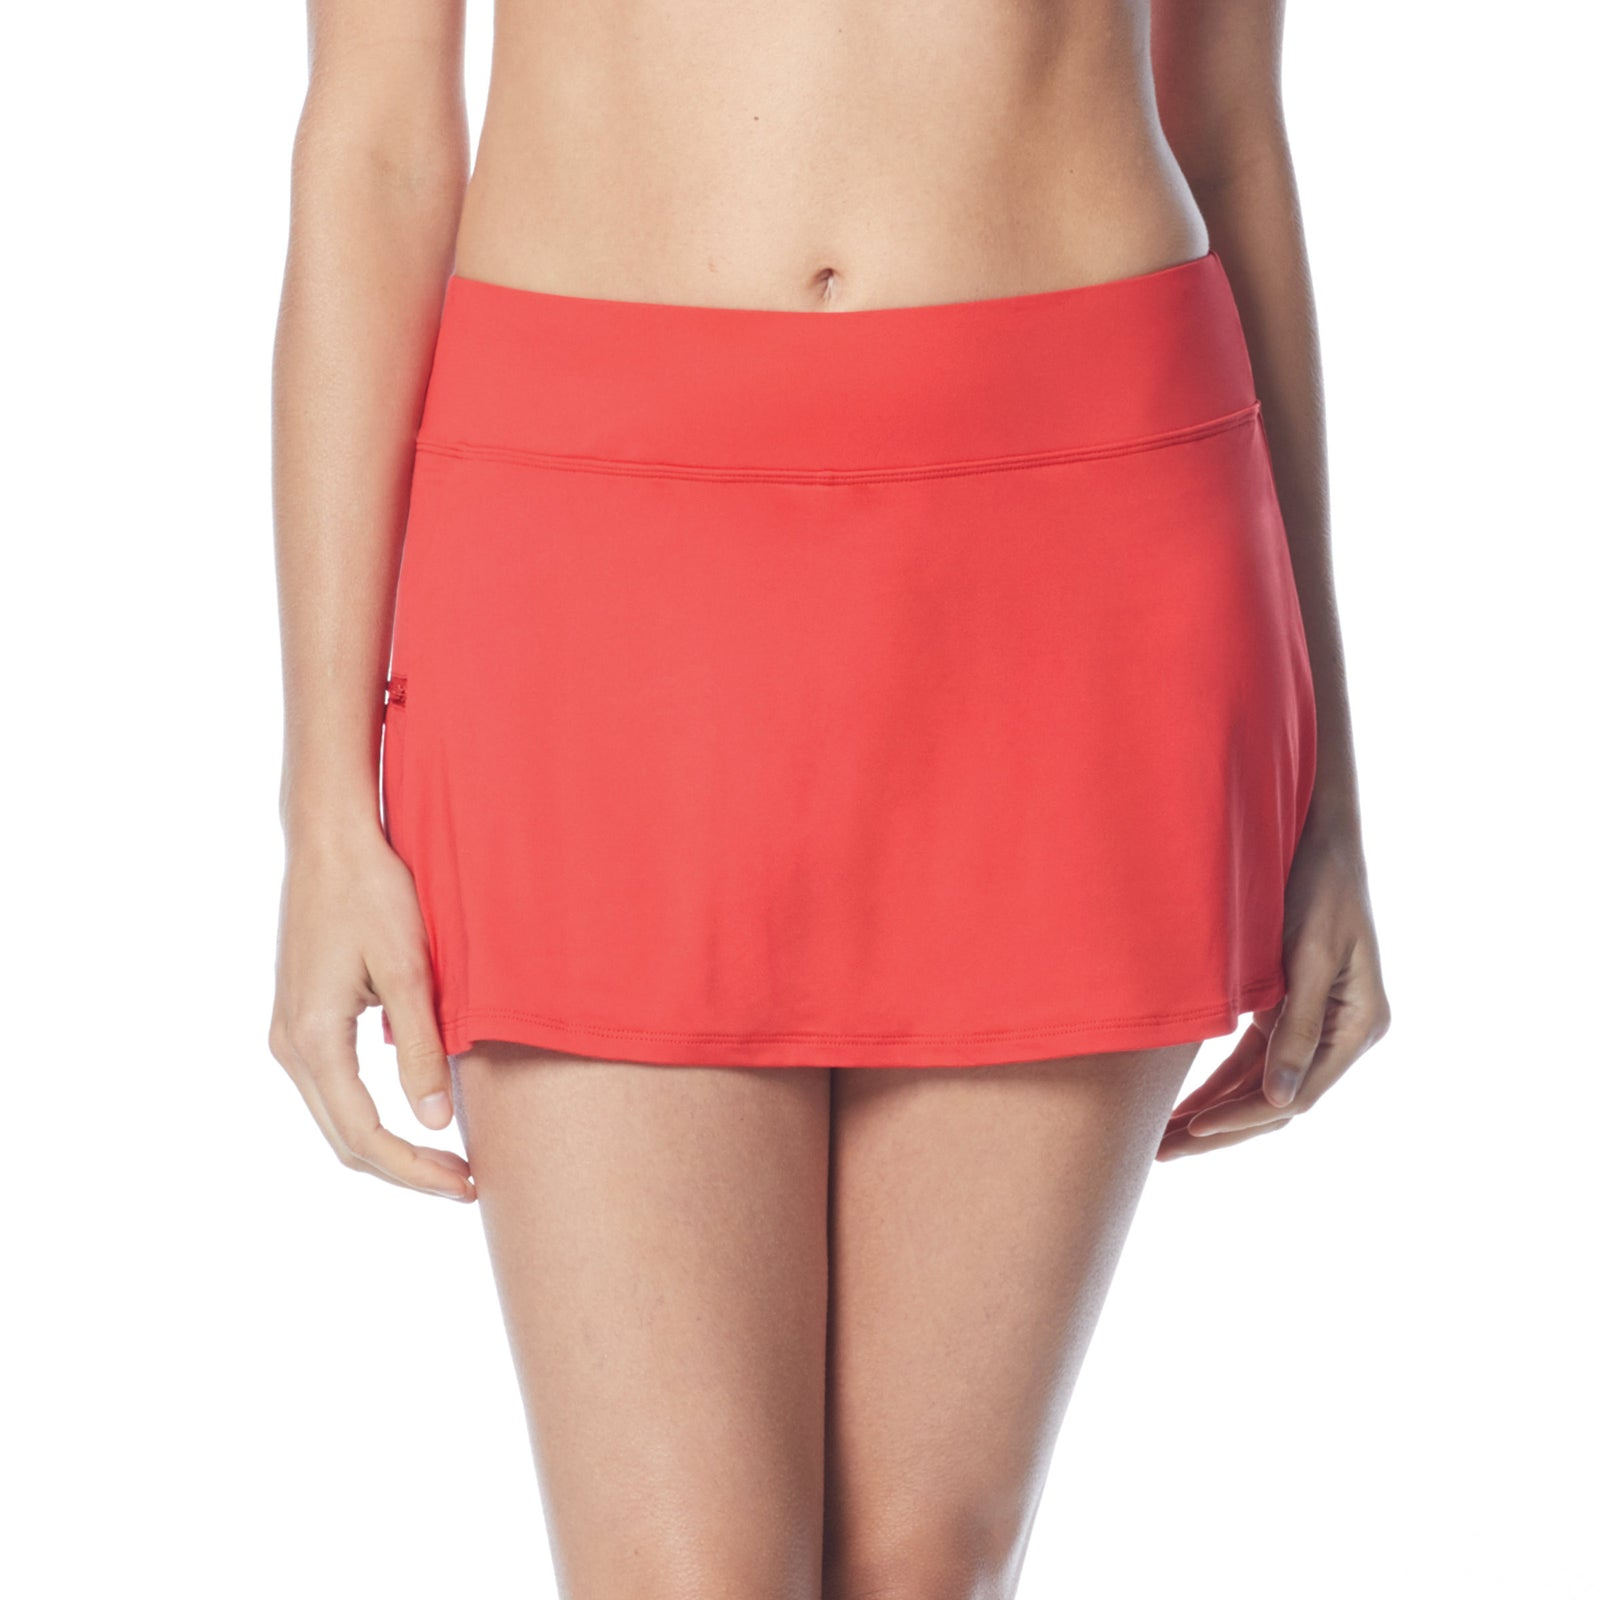 Swim Skort Boy Shorts Attached Underneath Full Coverage Zippered Pocke 50+ UPF 4 Way Stretch Soft Touch Comfort Fabric with Lycra® Chlorine Resistant Fabric Content: 85% Nylon/15% Xtra Life Lycra® Hand Wash Cold, Line Dry coral